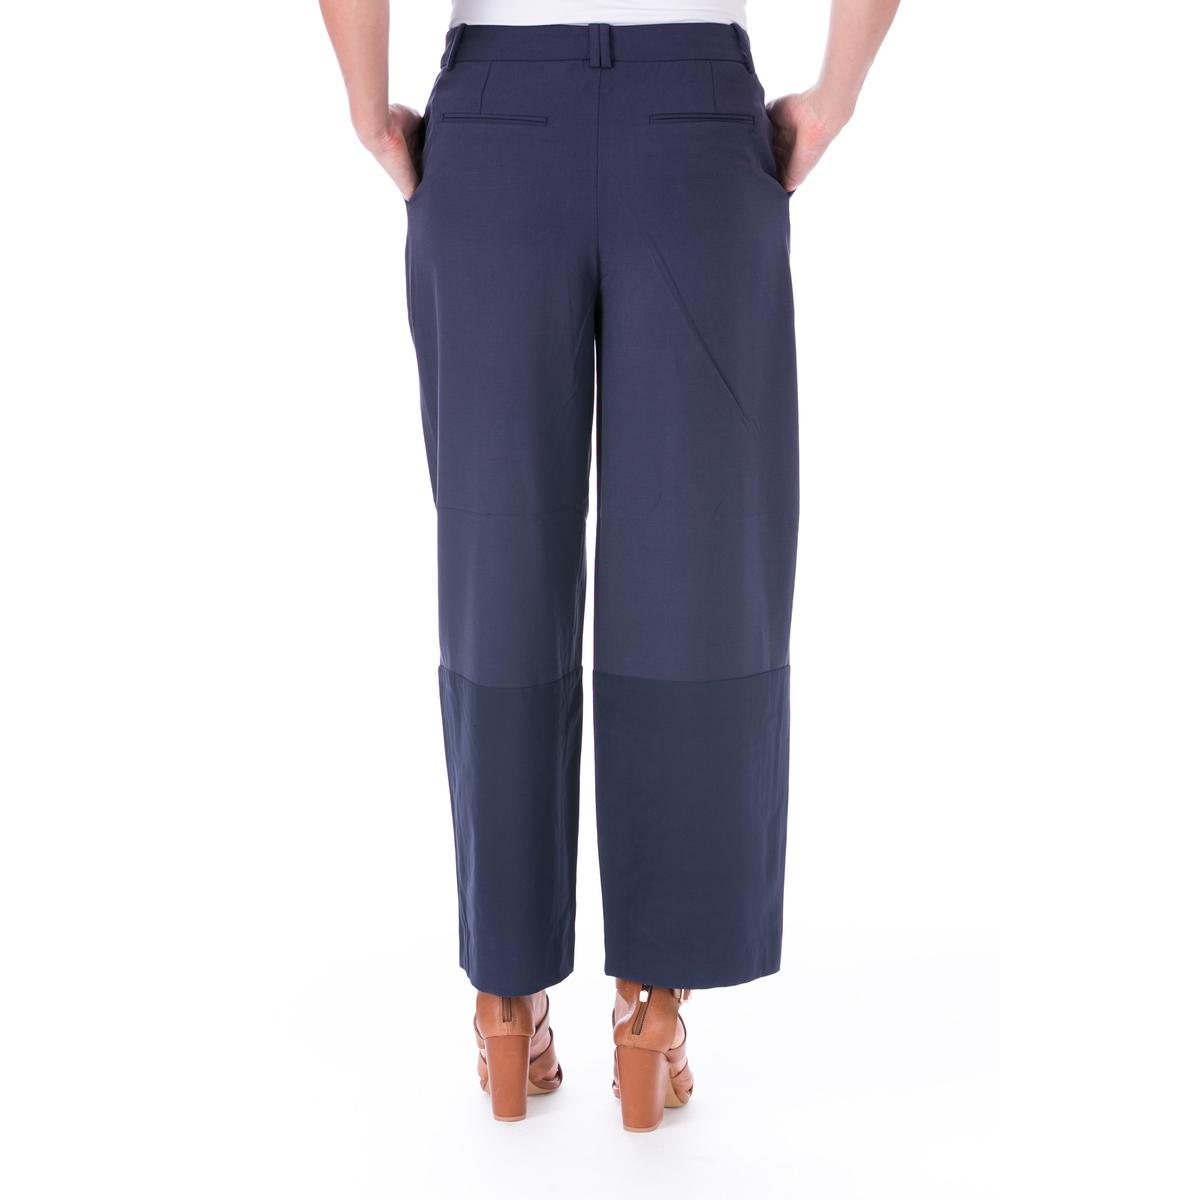 Unique Full Size Image Click To Close Full Size Nine West 2601 Womens The Slim Ponte Flat Front Dress Pants Bhfo Nine West Is A Womens Apparel, Footwear And Accessory Company Known By Women Across The Globe Each Season They Provide